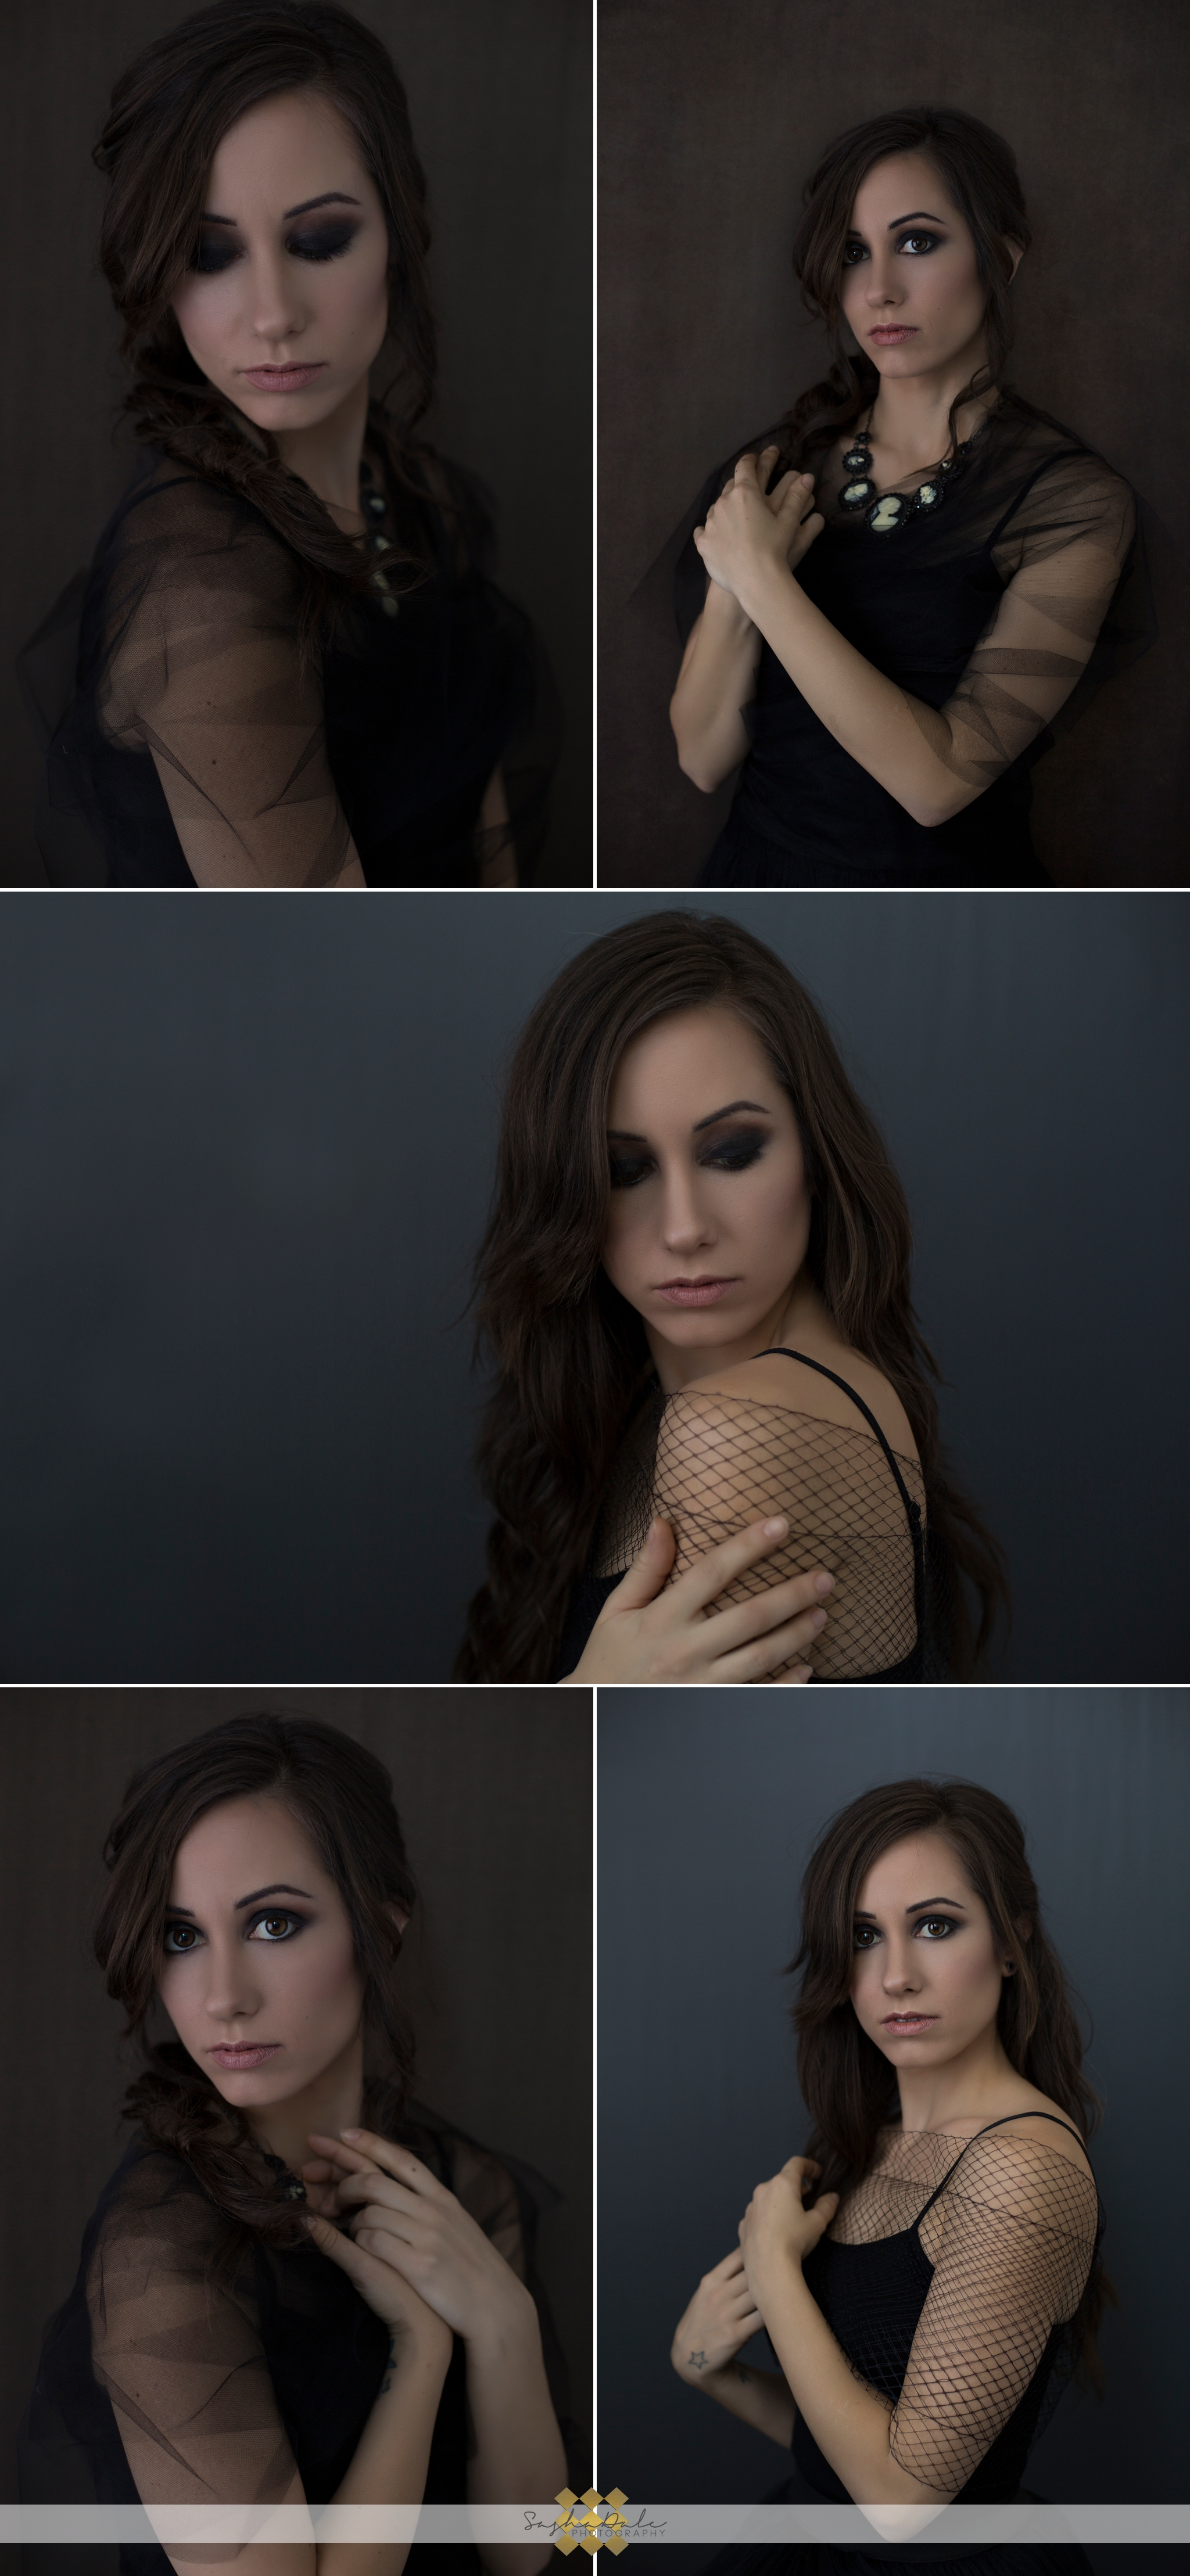 Sultry, CT Photographer, Women's Beauty Photography, Make-Up